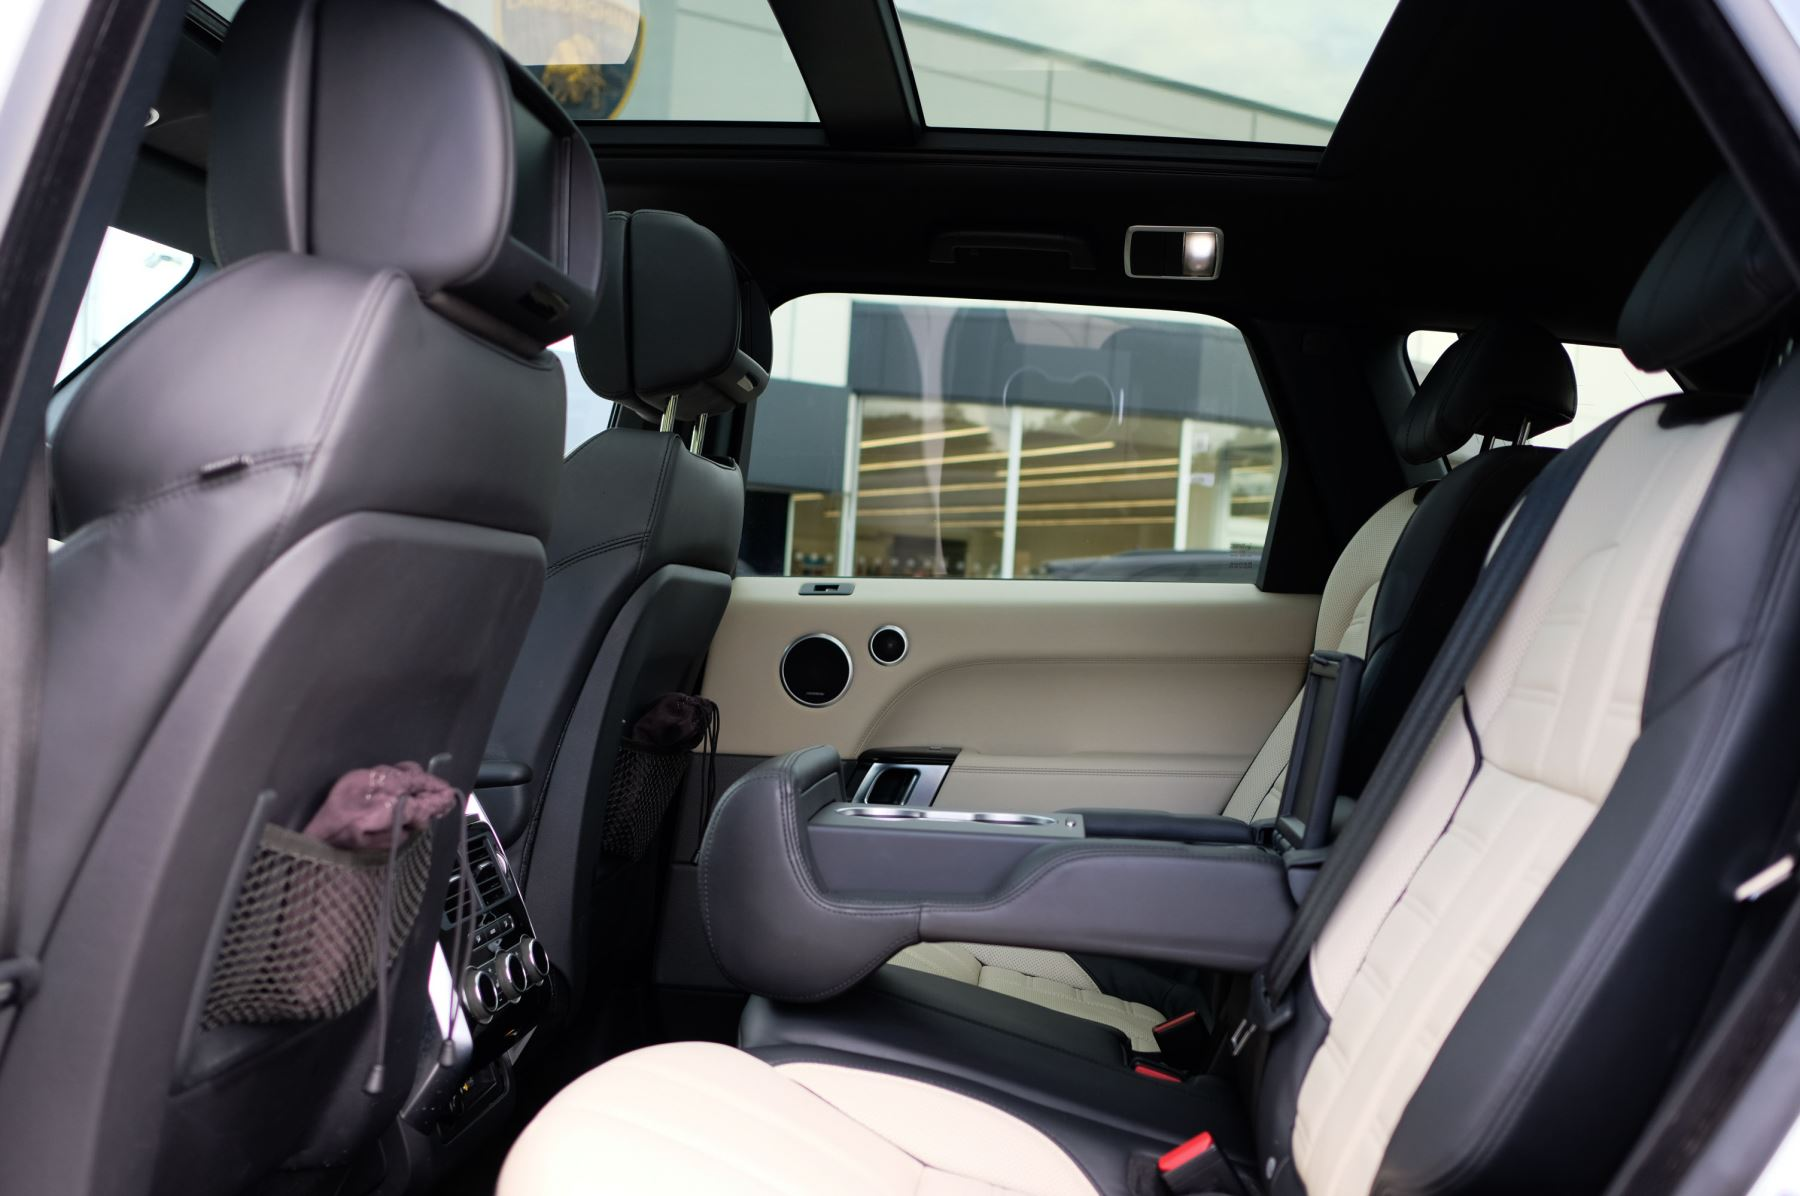 Land Rover Range Rover Sport 5.0 V8 S/C Autobiography Dynamic - 22 Inch Alloy Wheels - LED Signature Lights - 360 Camera image 13